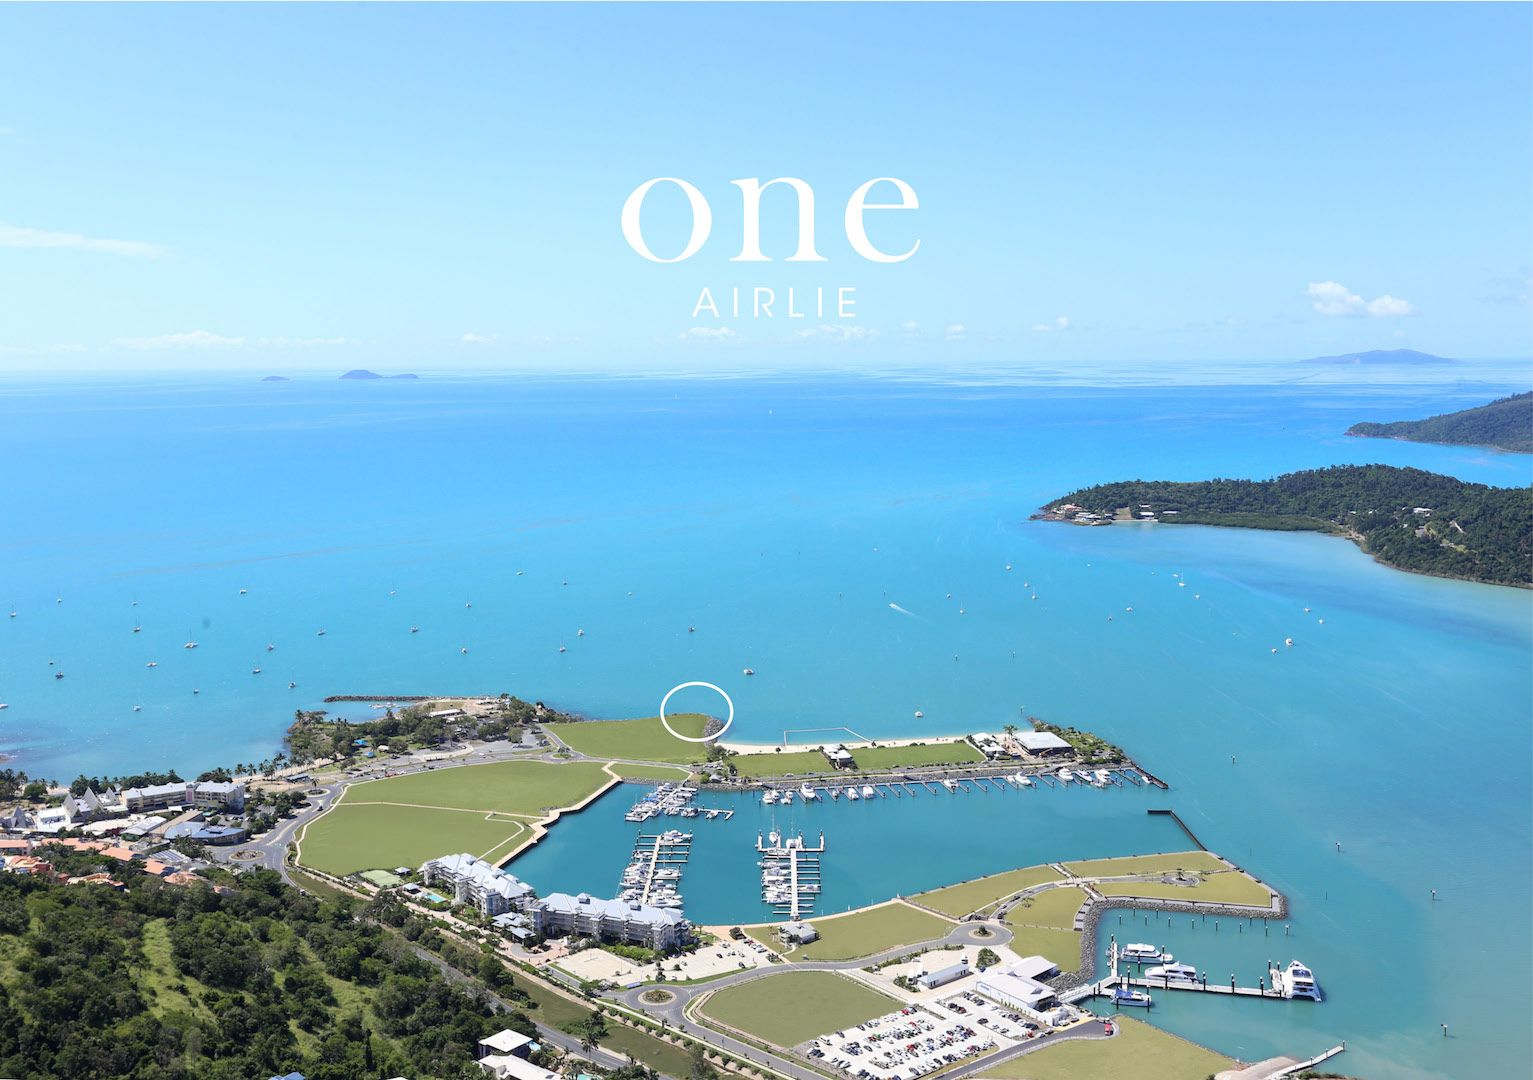 One Airlie - An unrepeatable opportunity to create a luxury Whitsundays residence  Airlie Beach, Queensland,4802 Australia